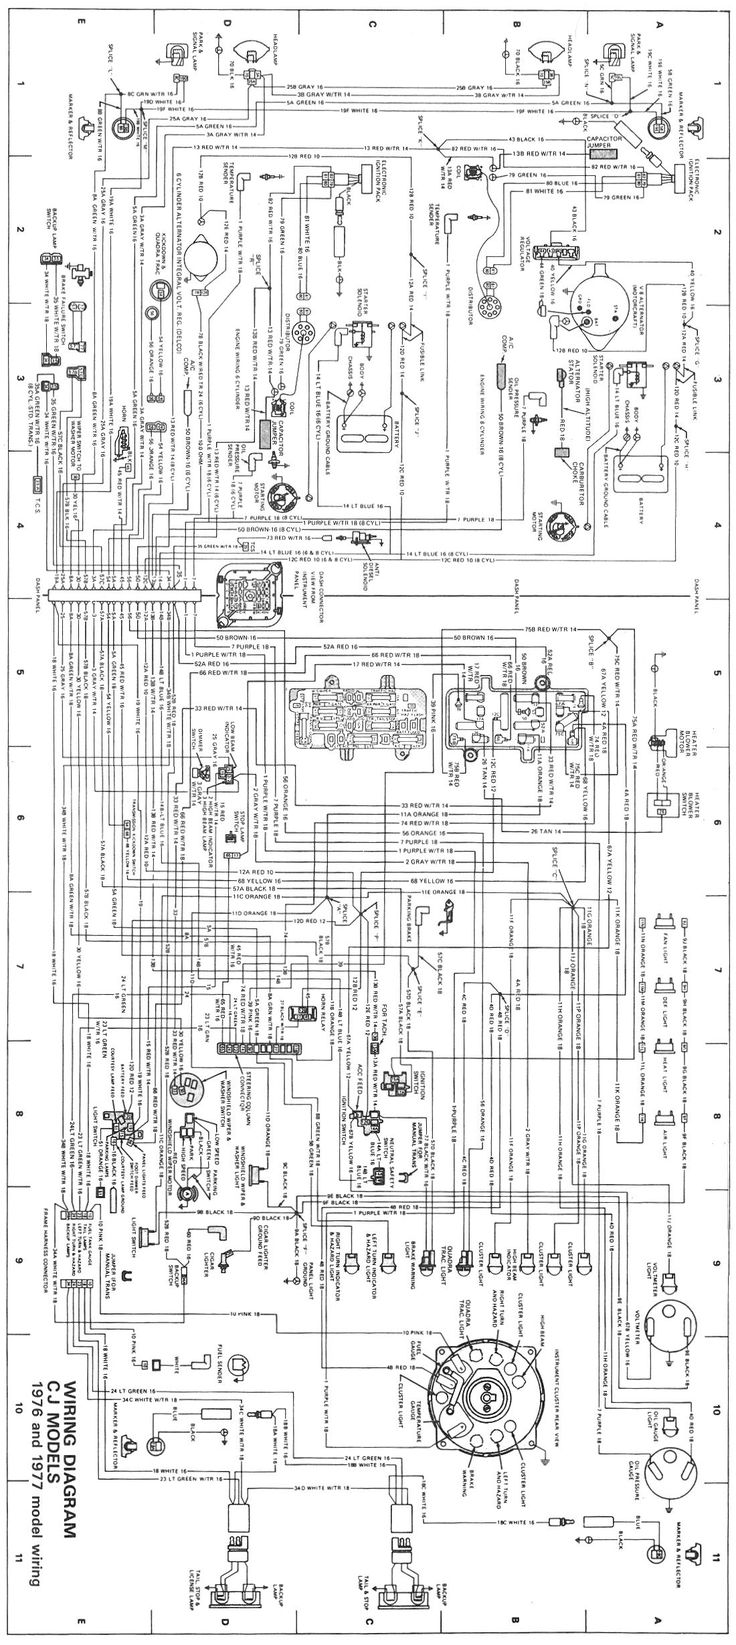 1976 cj7 wiring diagram